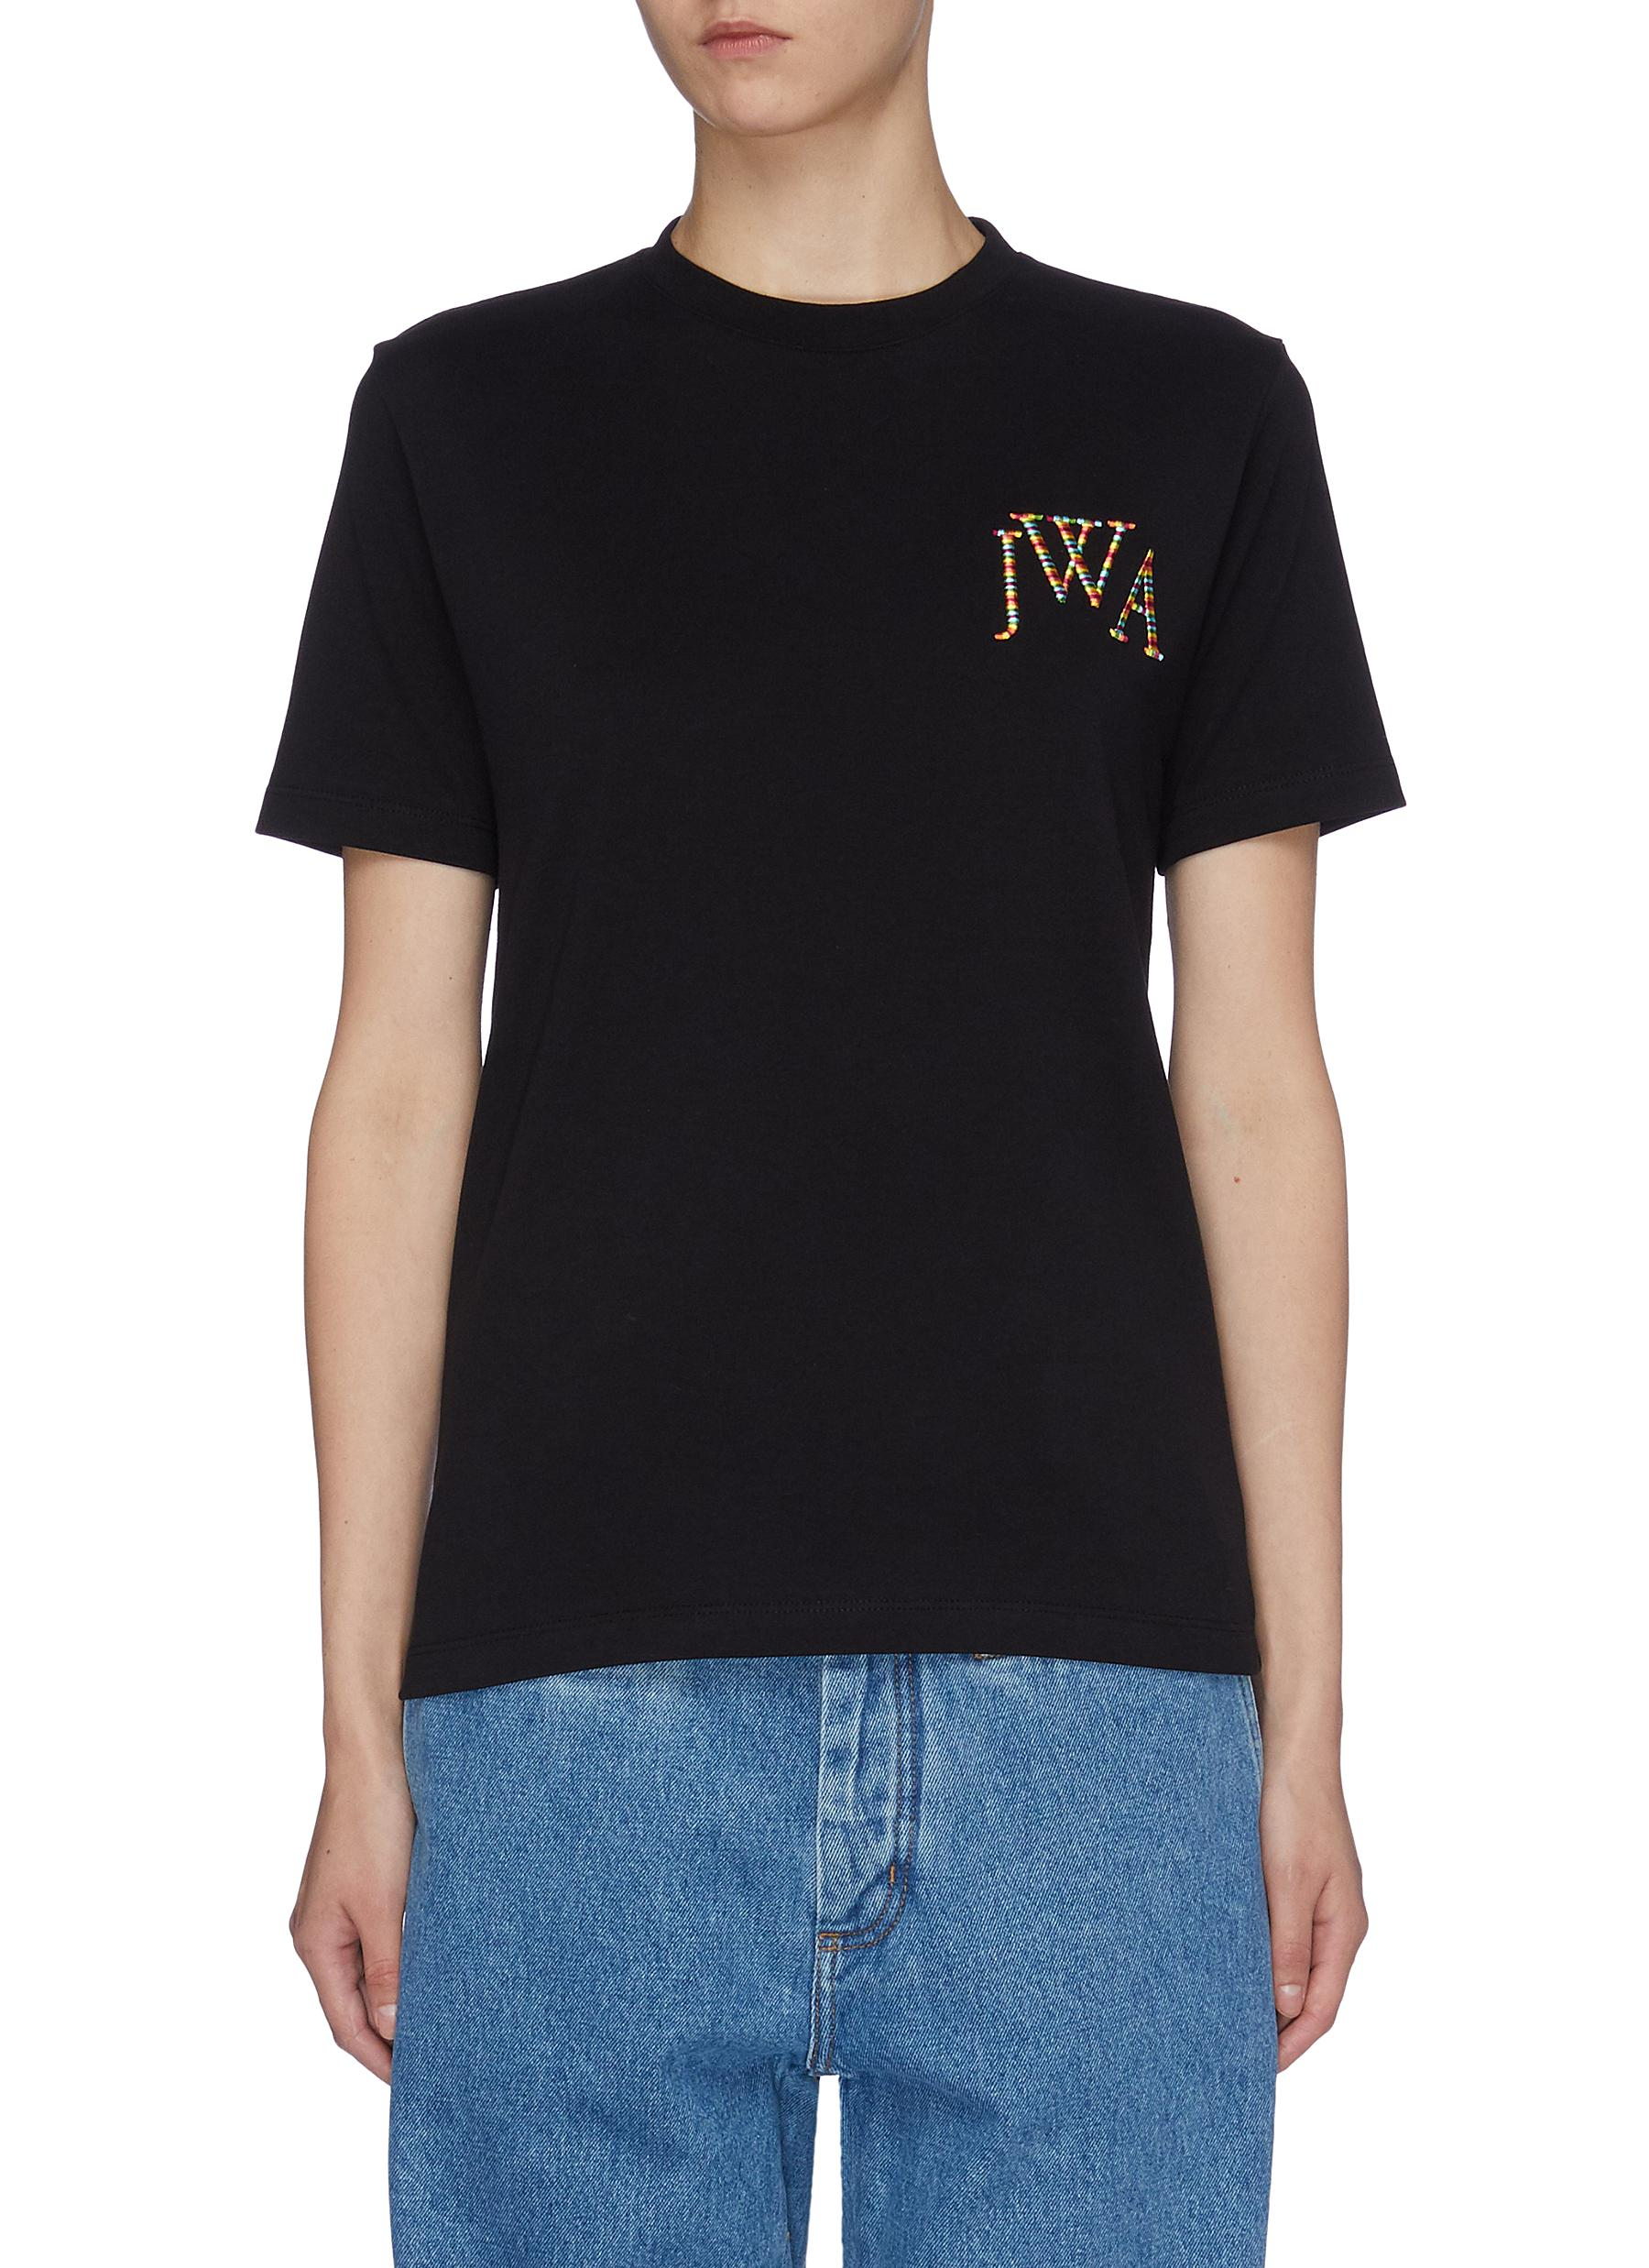 Logo embroidered T-shirt by Jw Anderson